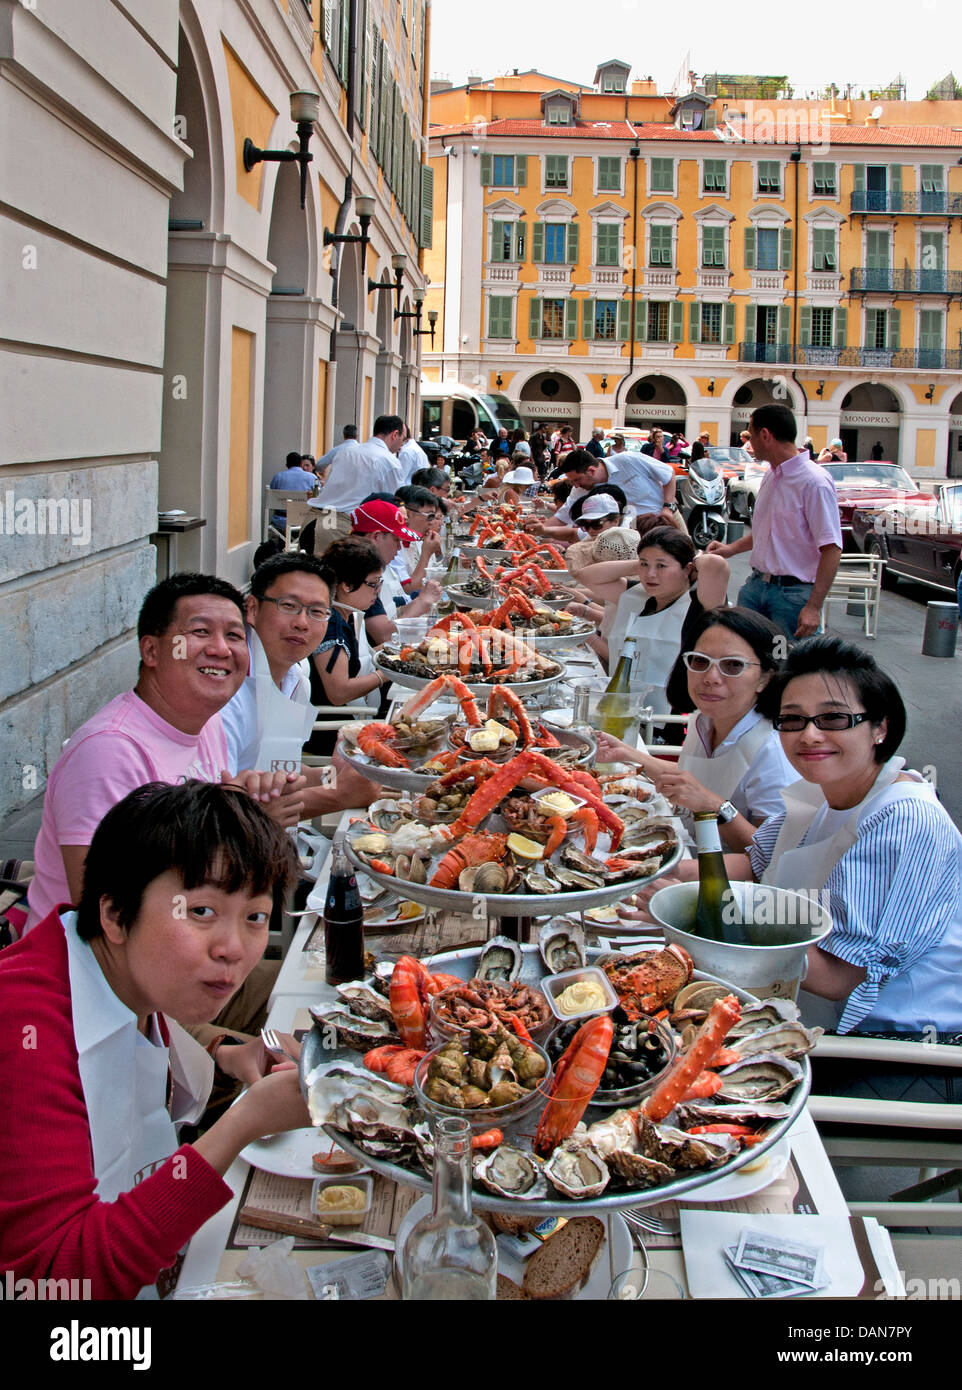 lunch cafe de turin nice france chinese people fruits de mer french stock photo 58244787 alamy. Black Bedroom Furniture Sets. Home Design Ideas